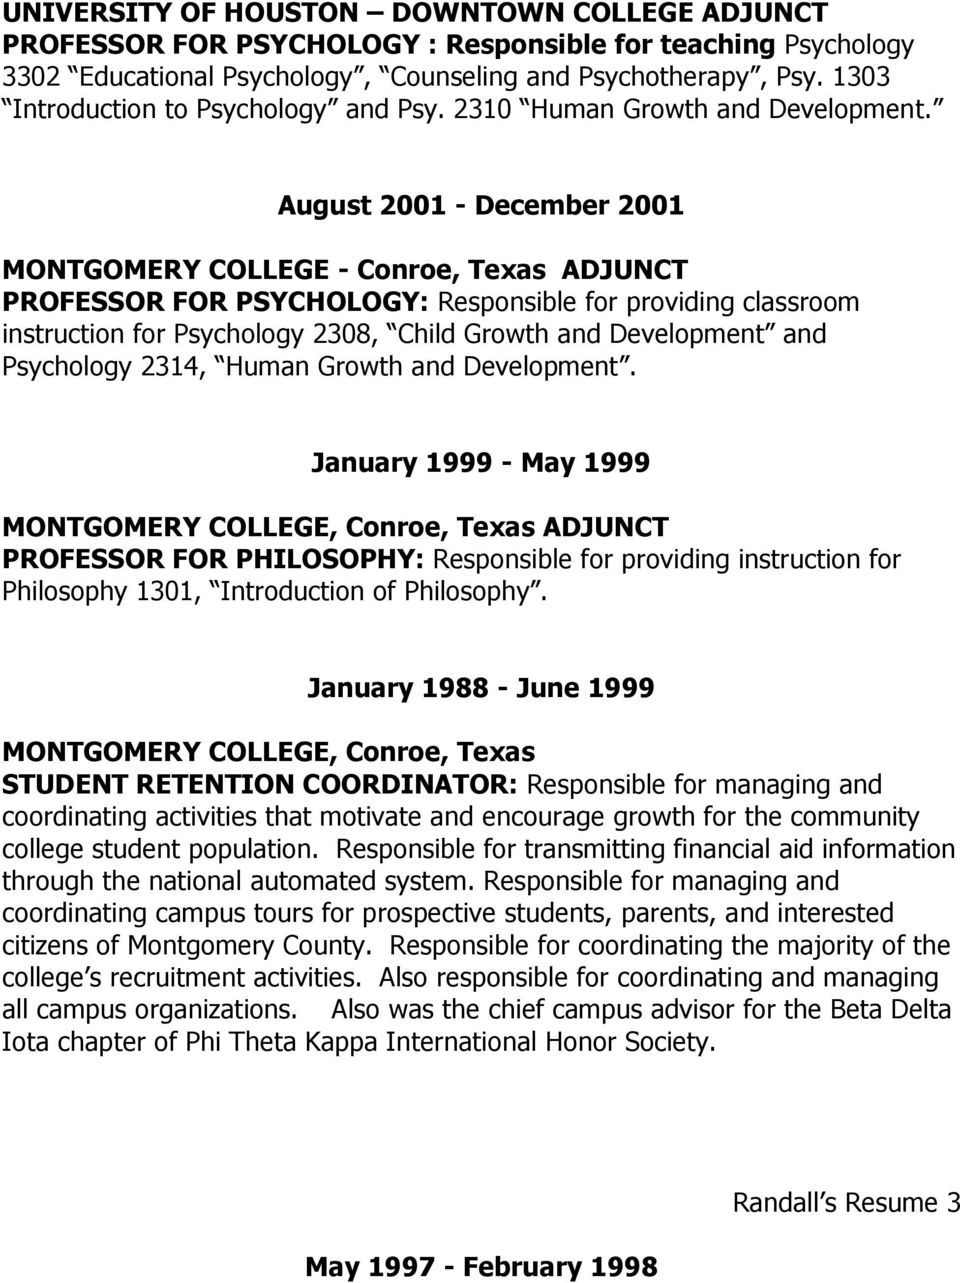 August 2001 - December 2001 MONTGOMERY COLLEGE - Conroe, Texas ADJUNCT PROFESSOR FOR PSYCHOLOGY: Responsible for providing classroom instruction for Psychology 2308, Child Growth and Development and